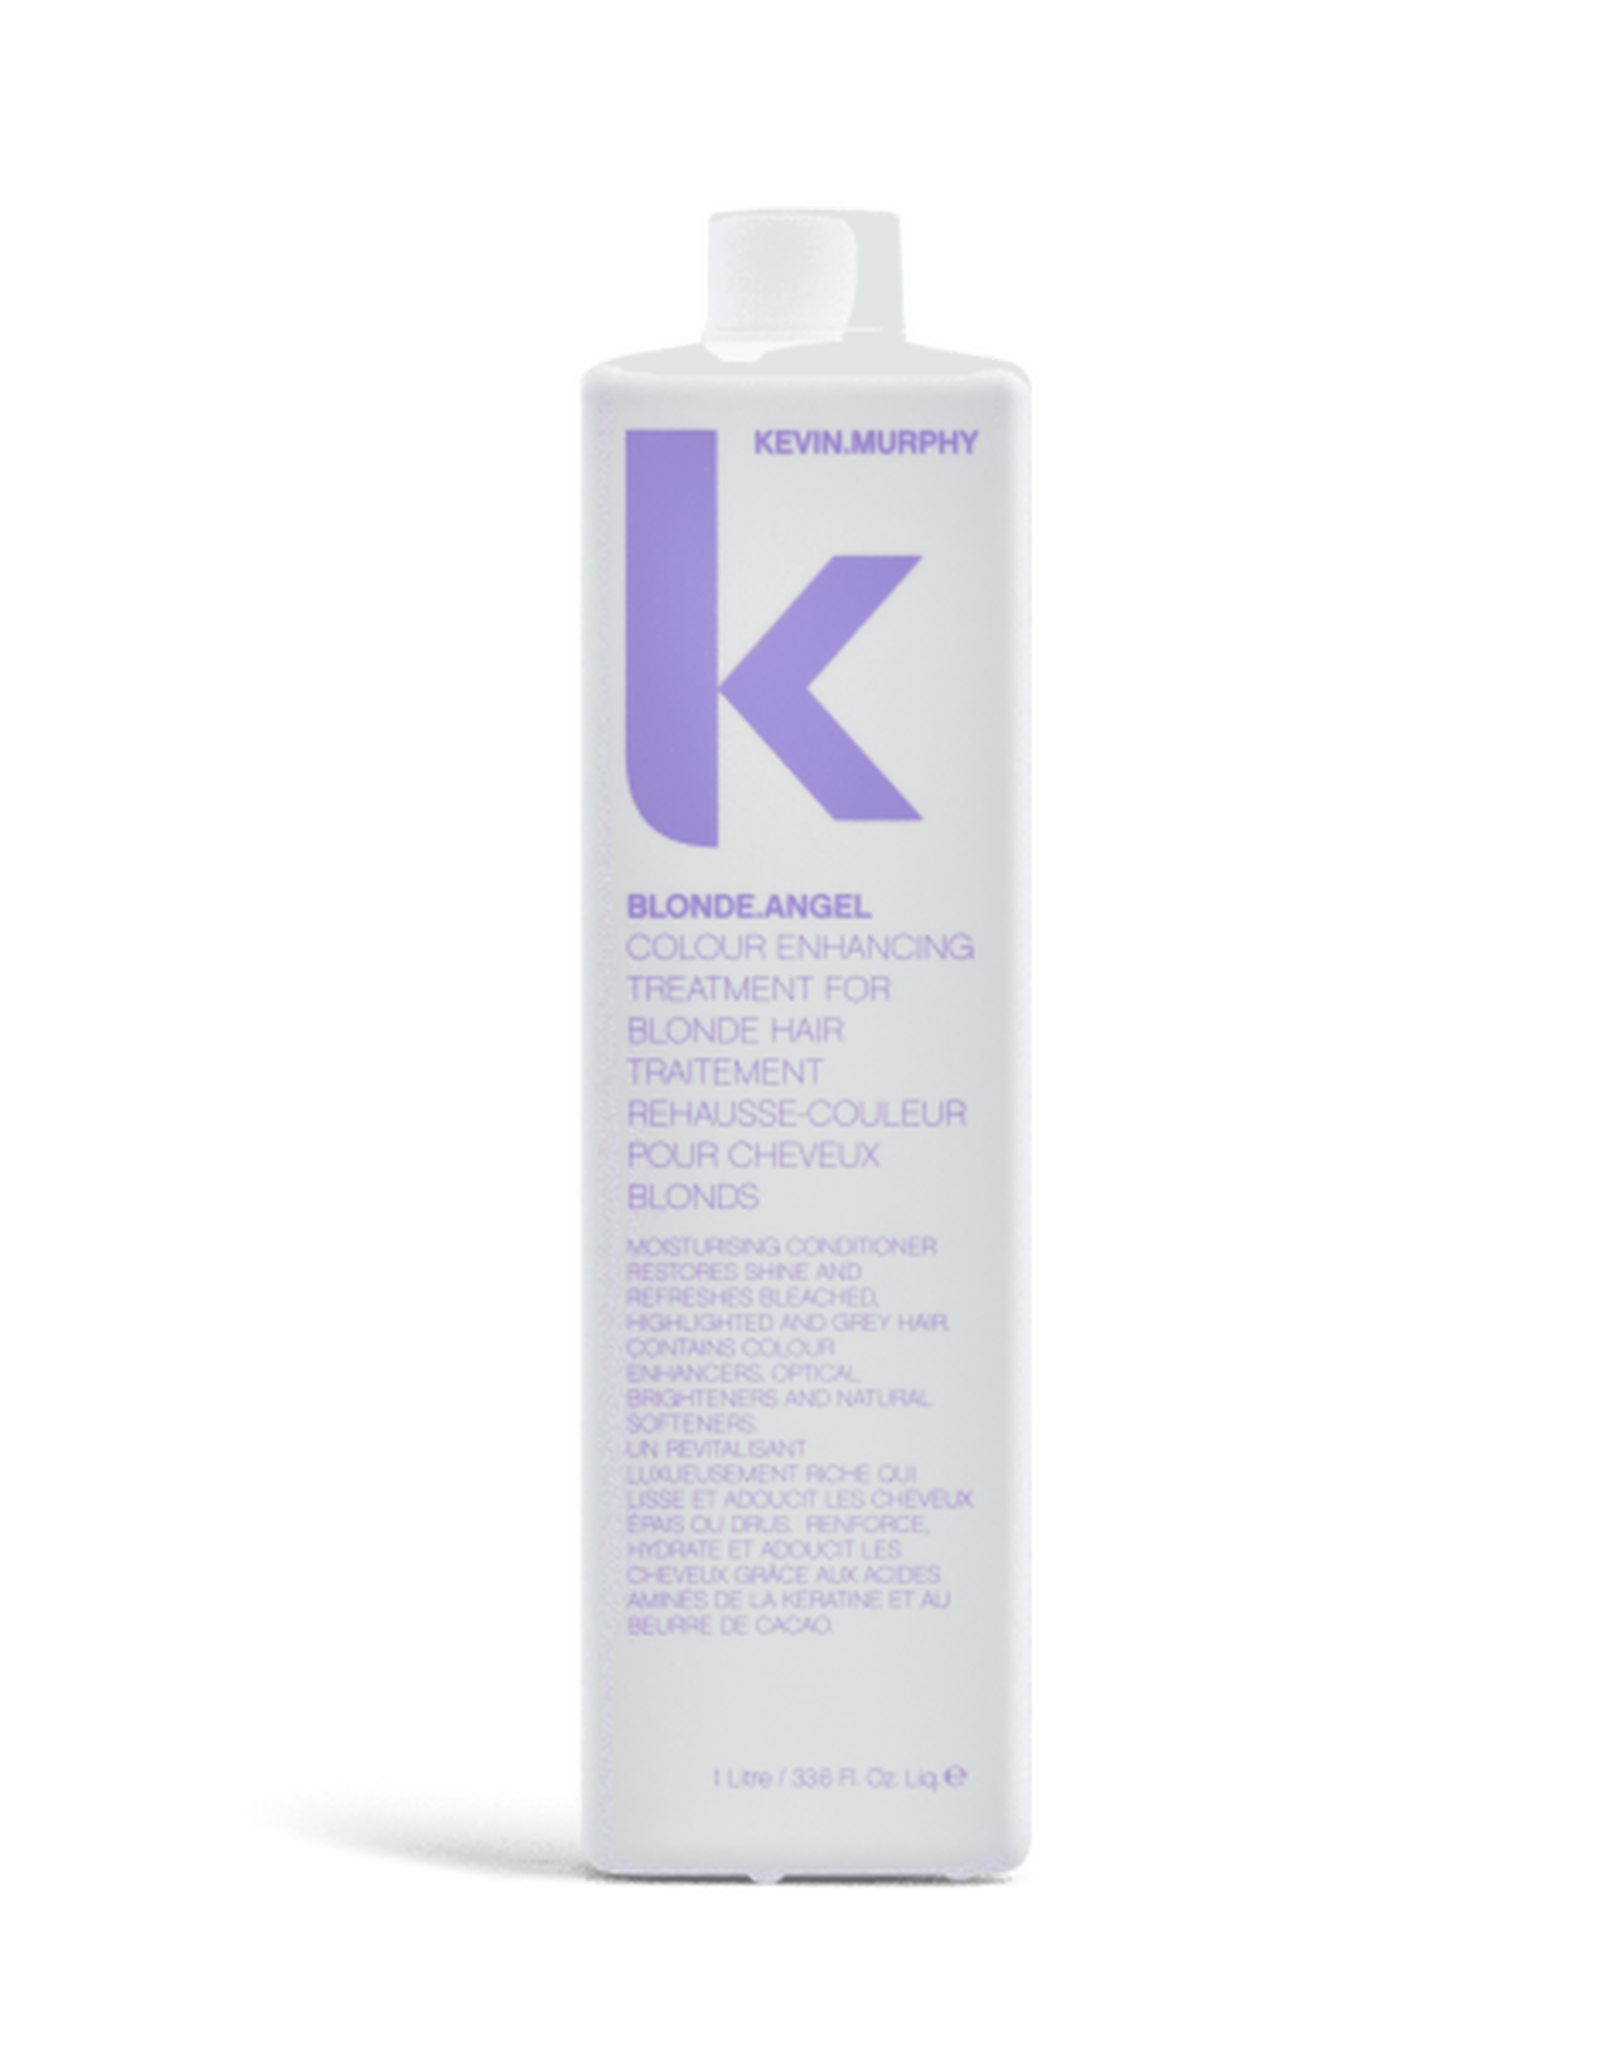 KEVIN.MURPHY Blonde.Angel.Treatment (Litre)